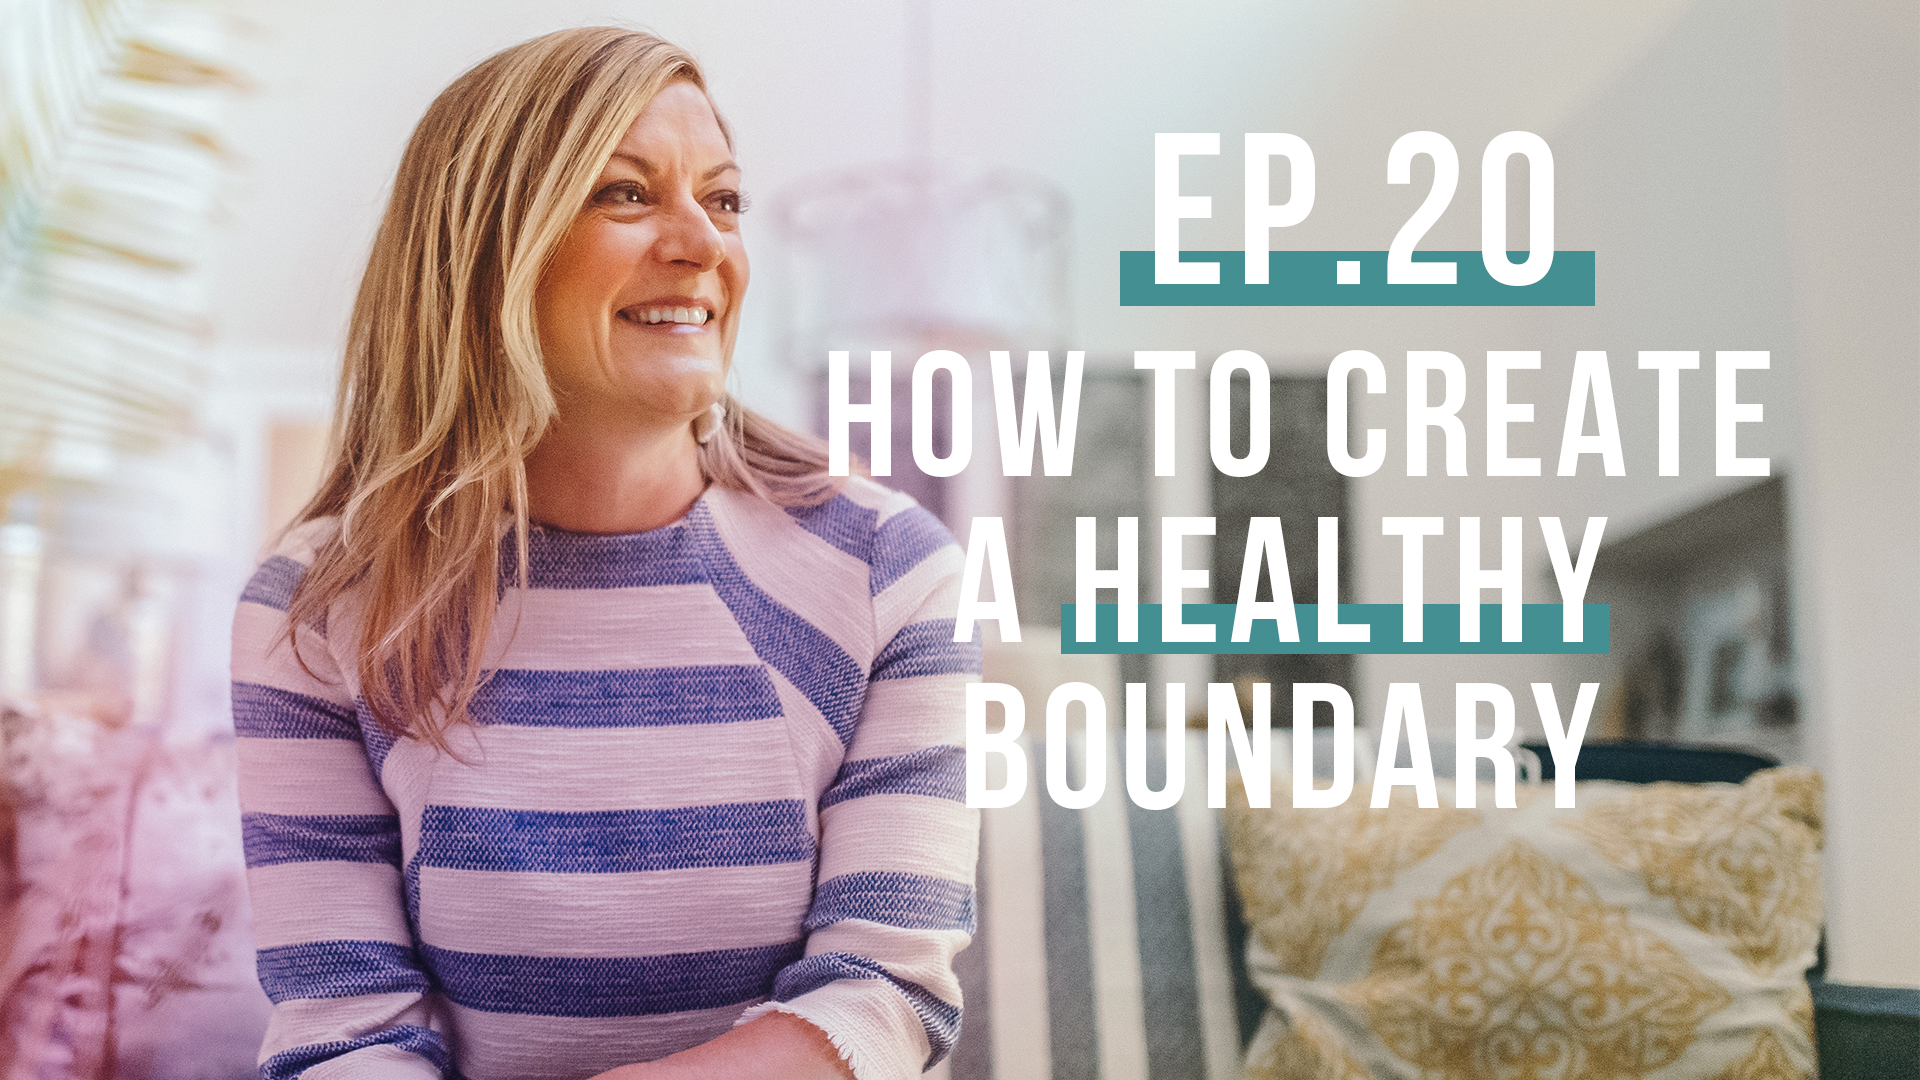 How to Create a Healthy Boundary (Let's Be Real, Ep. 20)